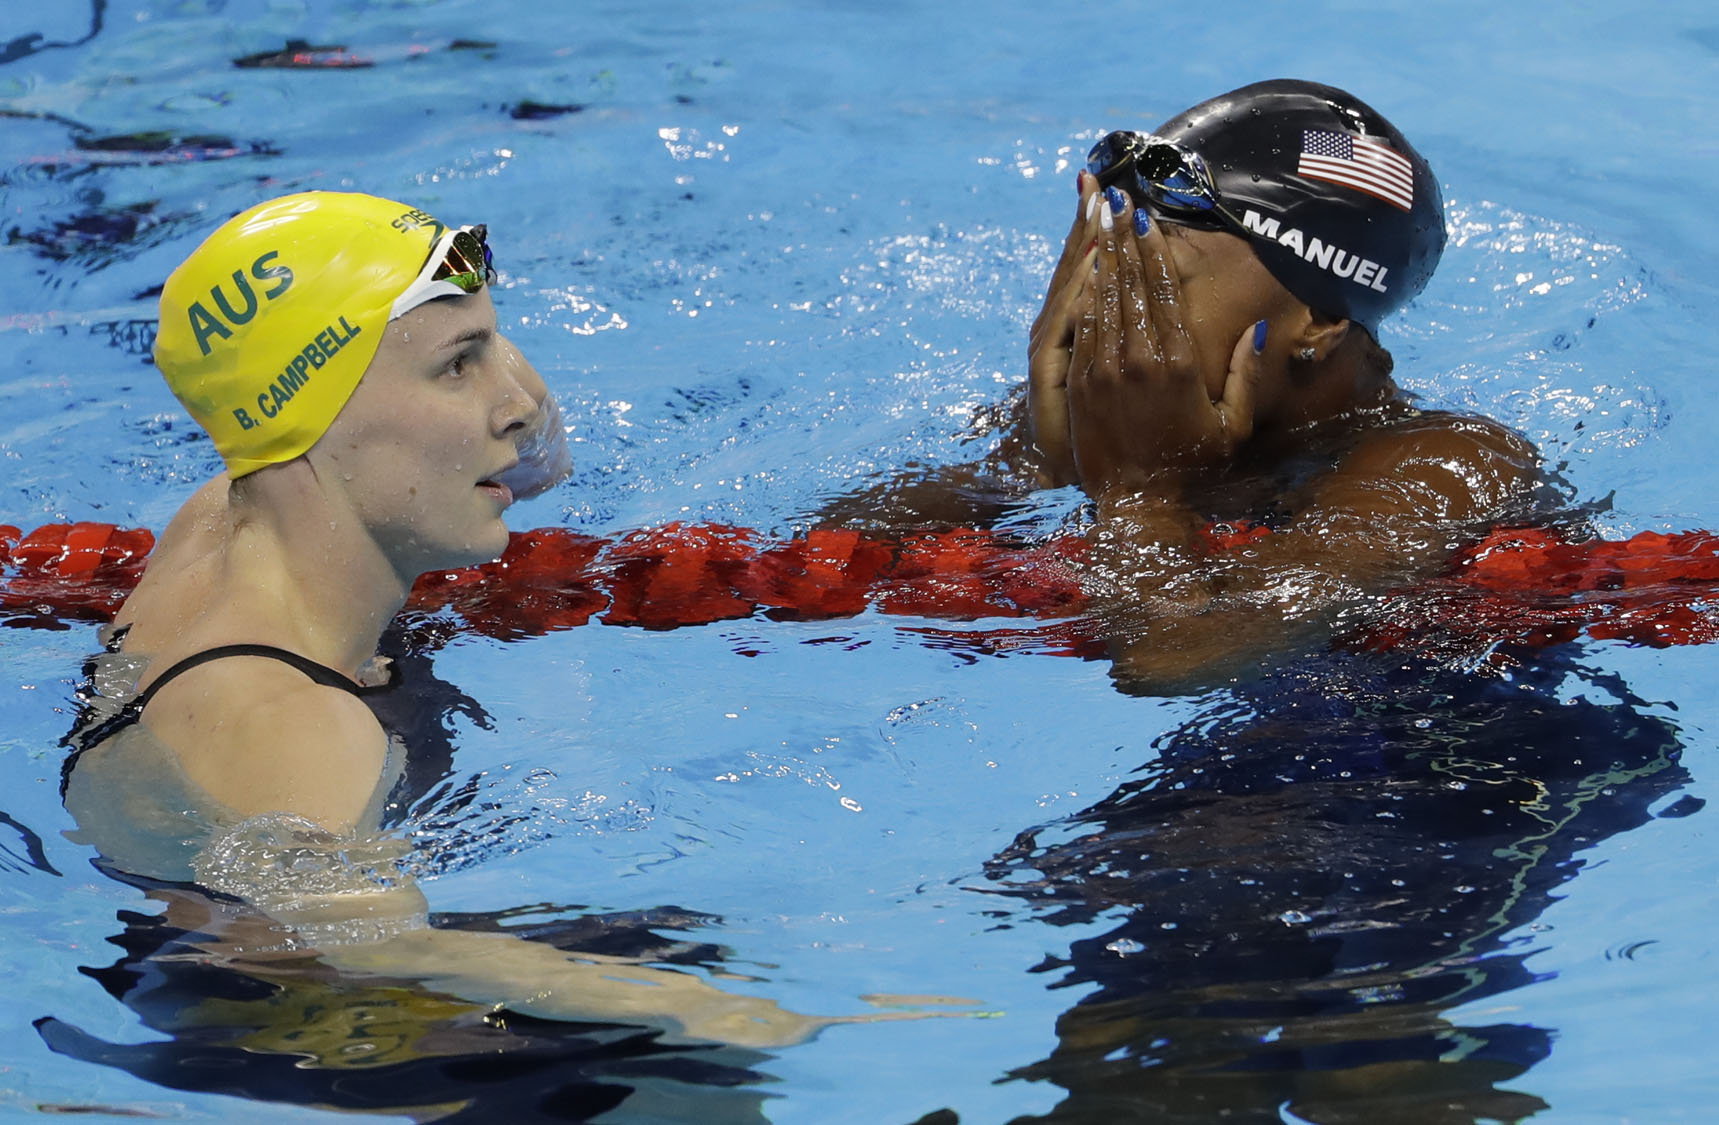 Scenes from Day 6 at the Rio 2016 Olympics